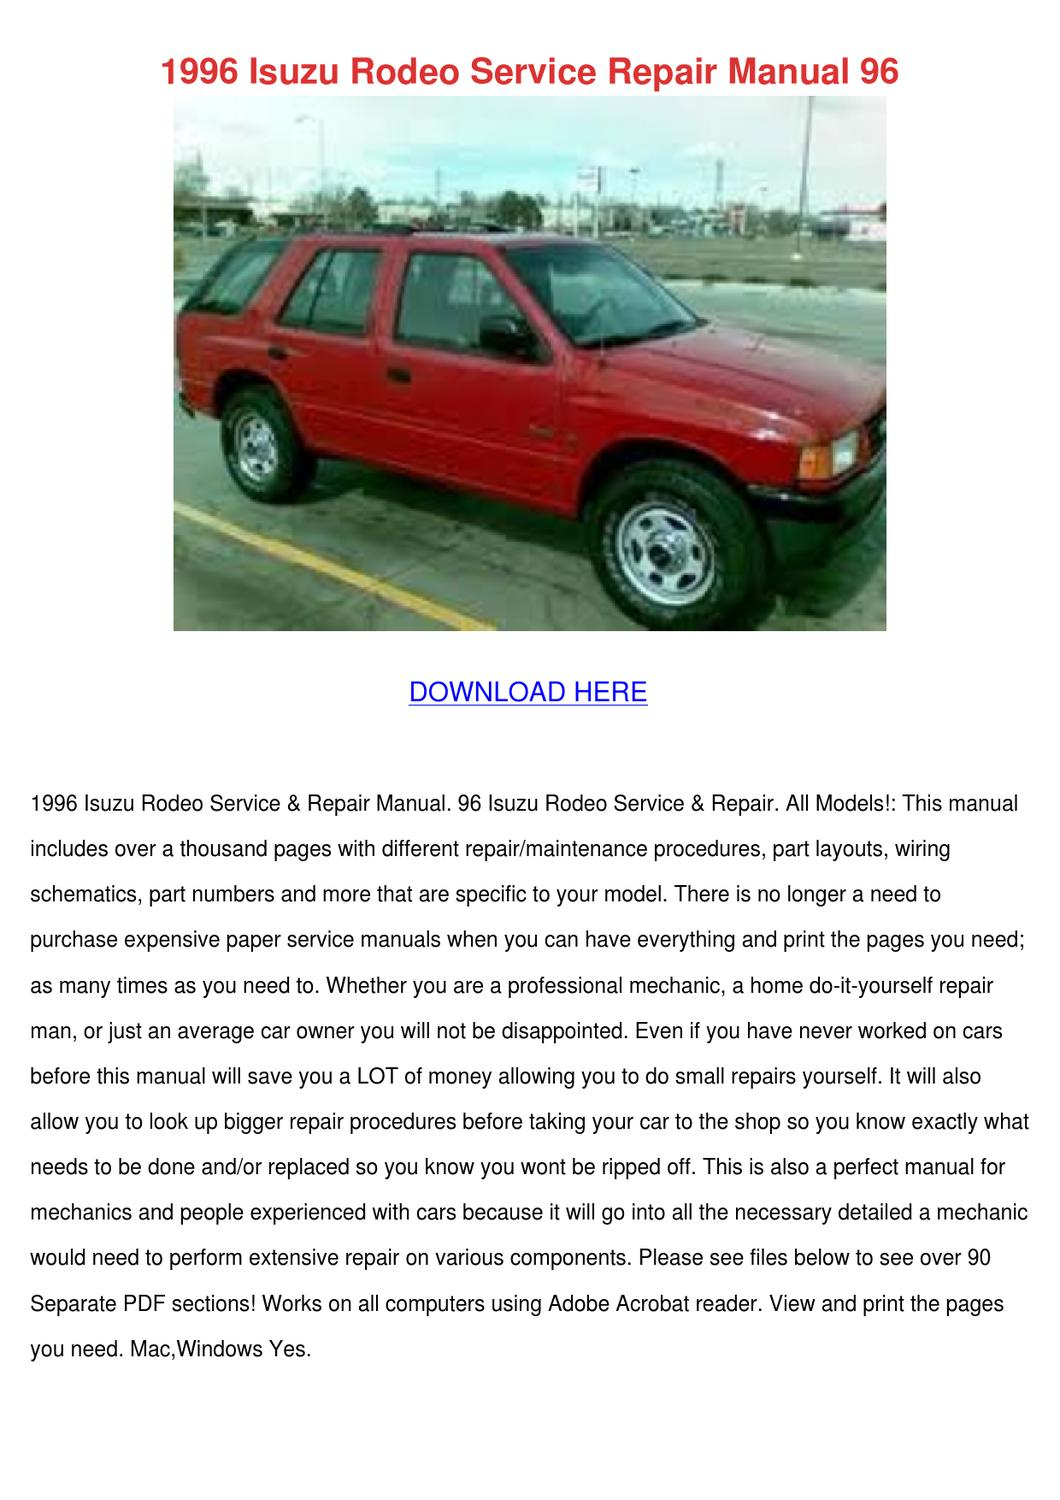 1996 isuzu rodeo service repair manual 96 by cathi keegan issuu rh issuu  com Cartoon Manual Automobile Owners Manual